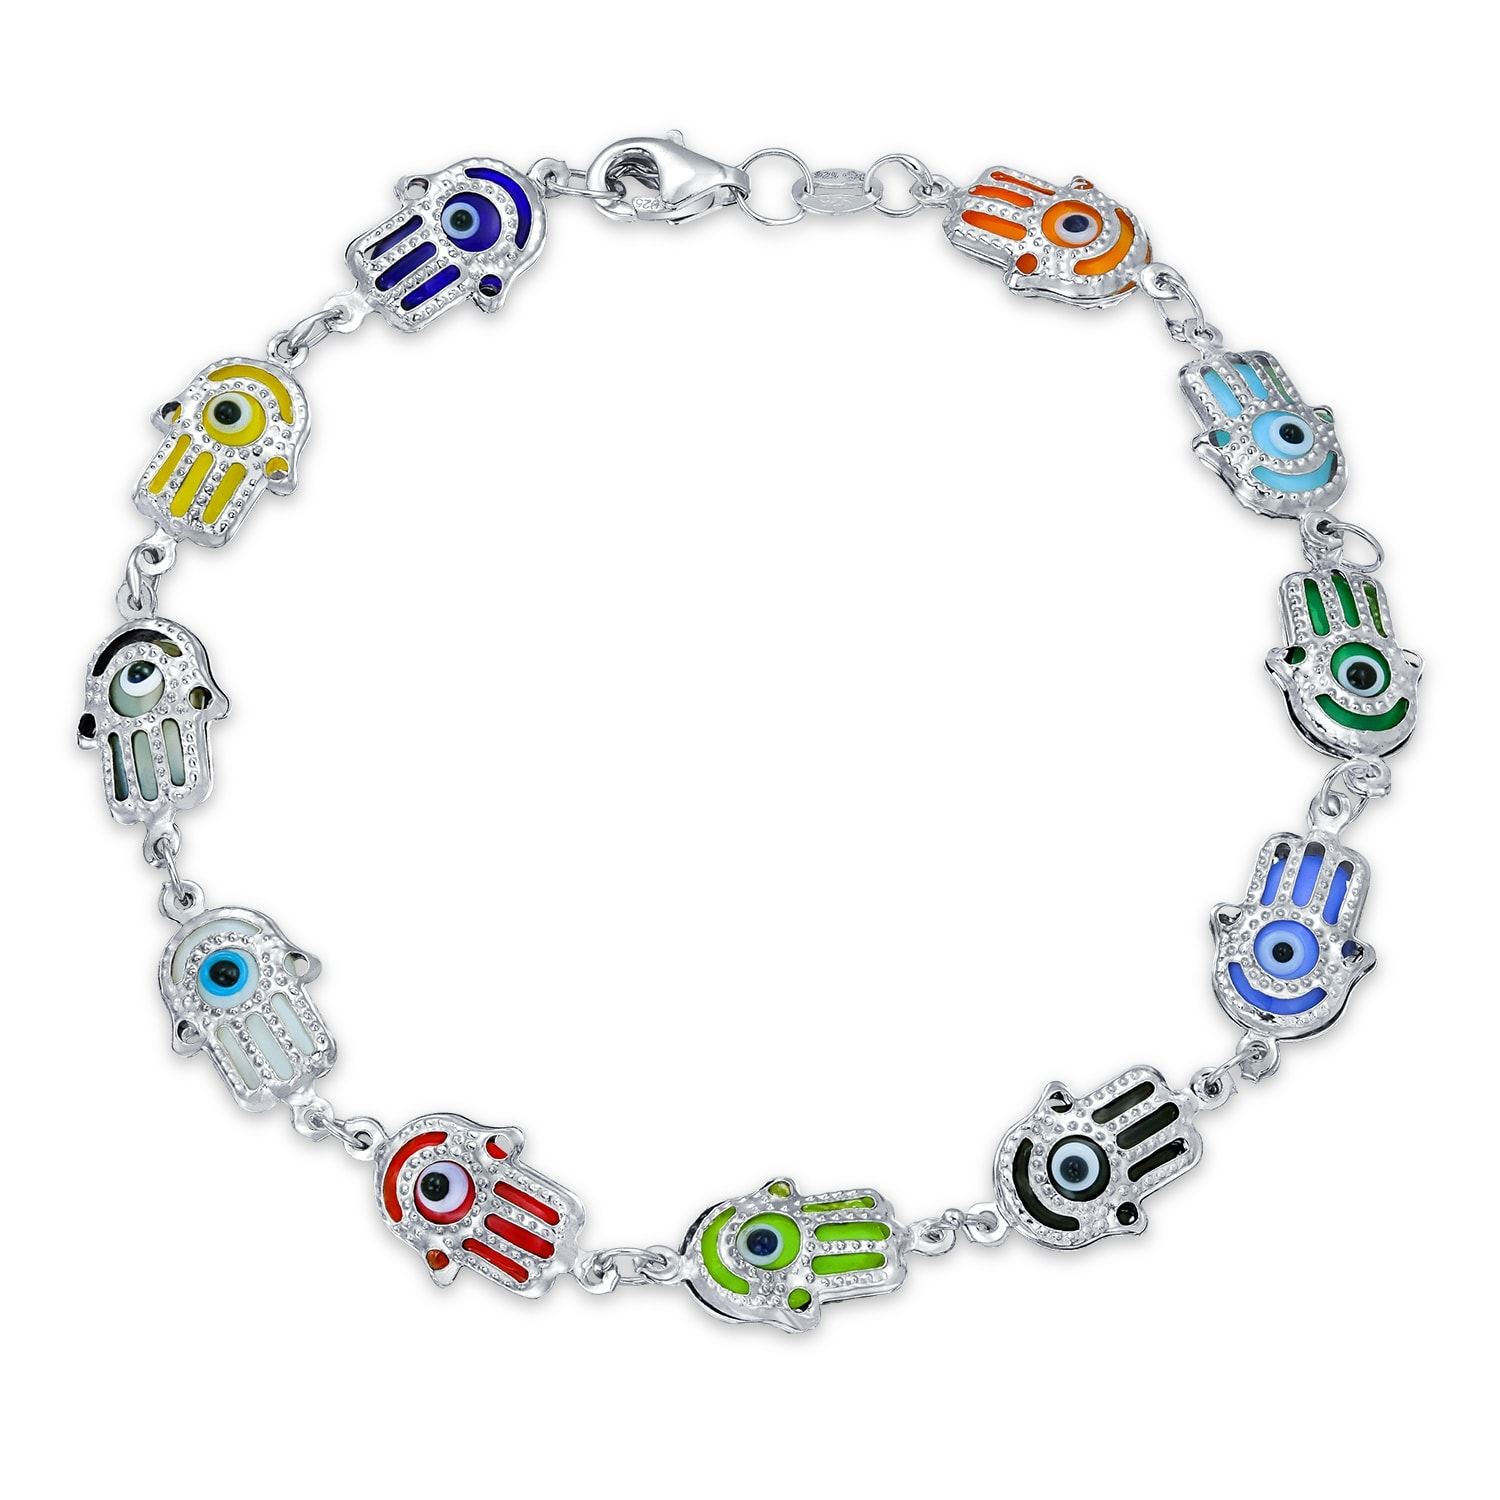 8a8e13d92 Shop Turkish Colorful Multi Color Hamsa Hand Bracelet For Women for  Protection and Good Luck 925 Sterling Silver - On Sale - Free Shipping On  Orders Over ...